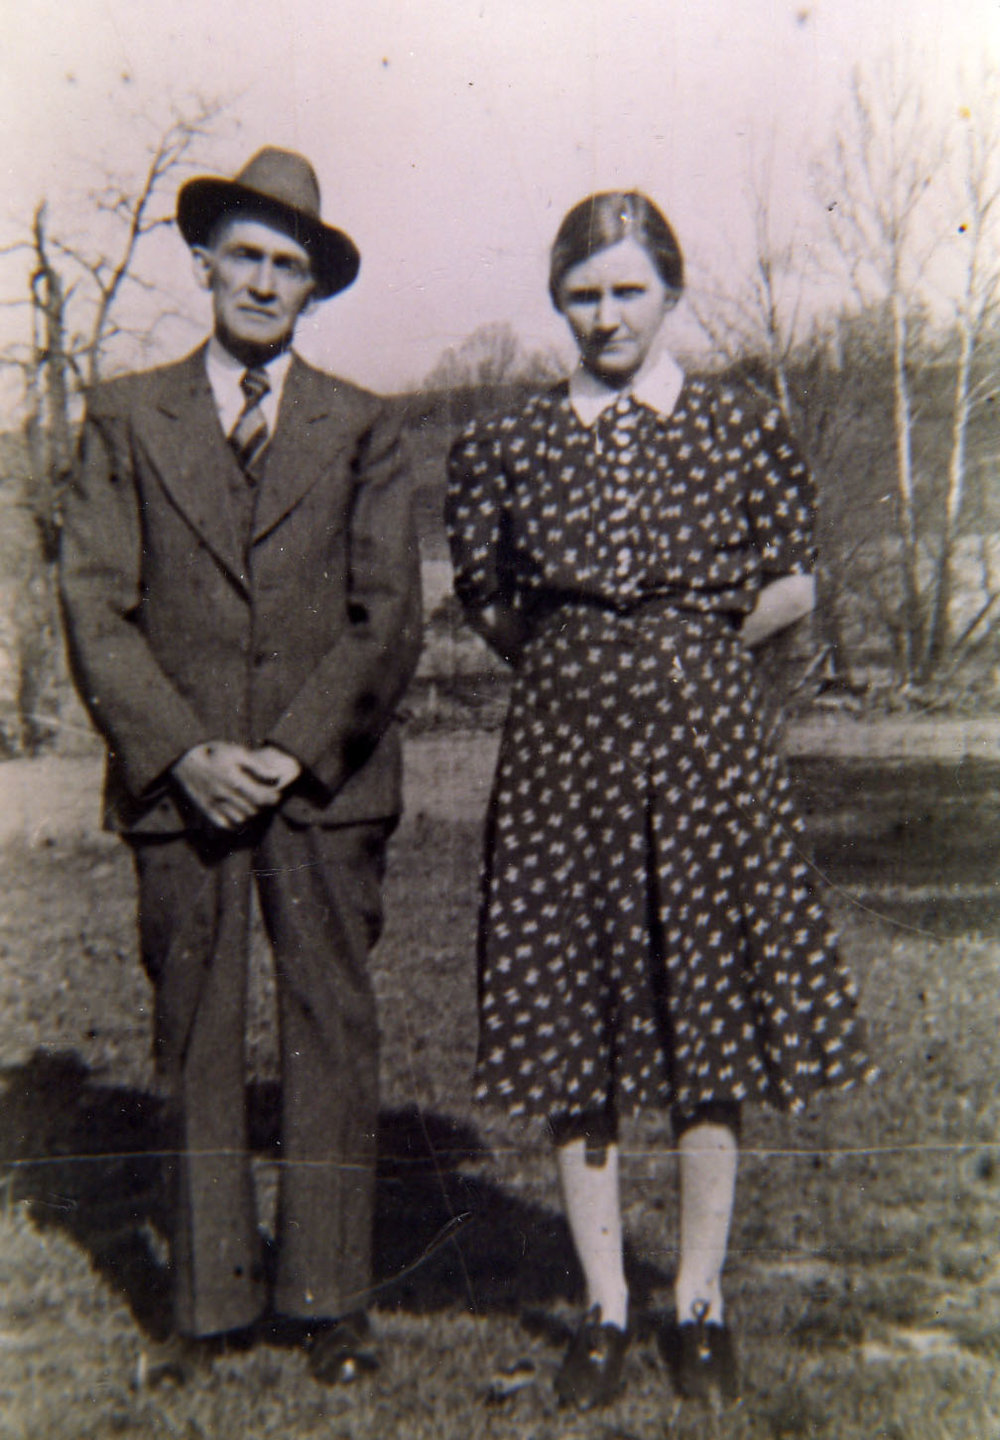 My great grandparents June and Bessie